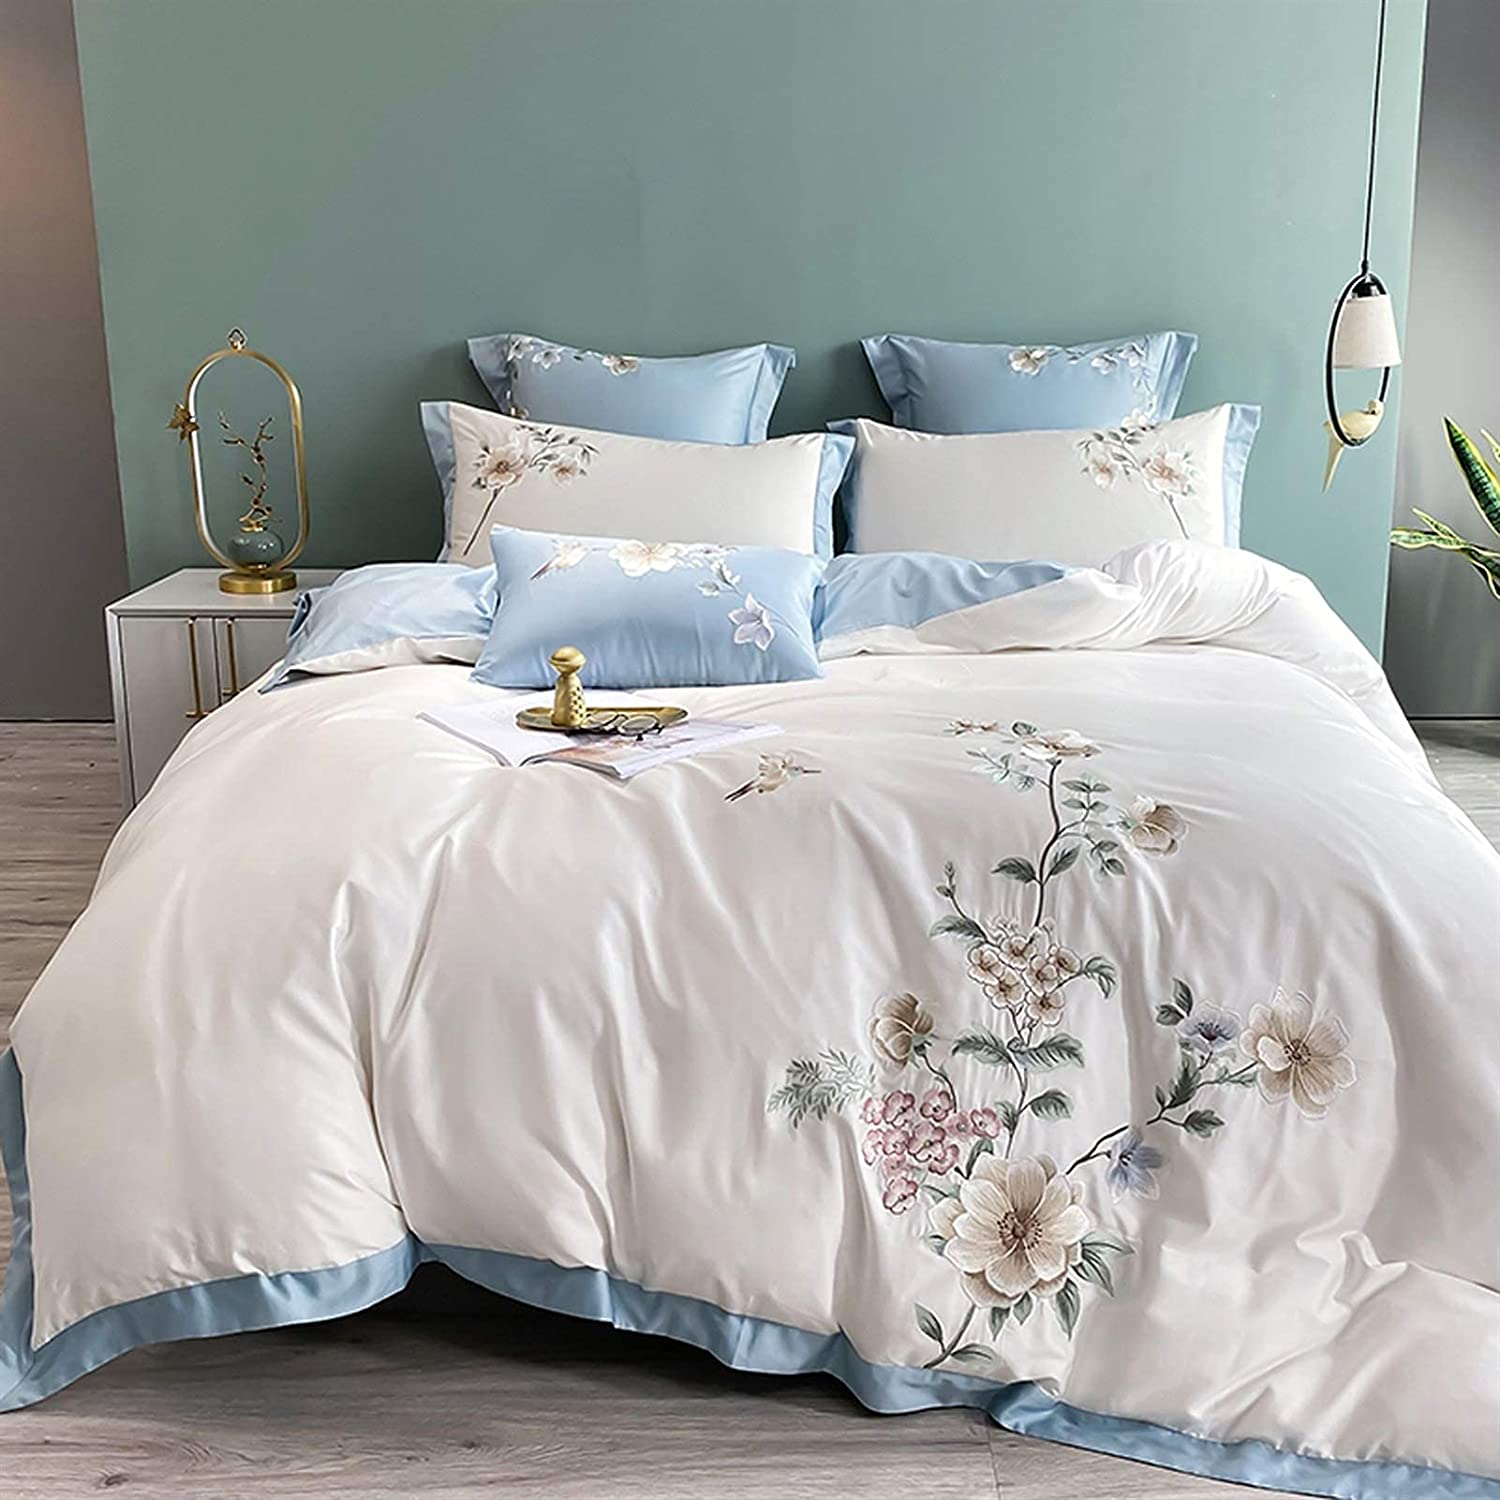 Luxury Brand new 600TC Egyptian Cotton Queen King C 4 Ranking TOP7 Set Bedding 7pcs Bed